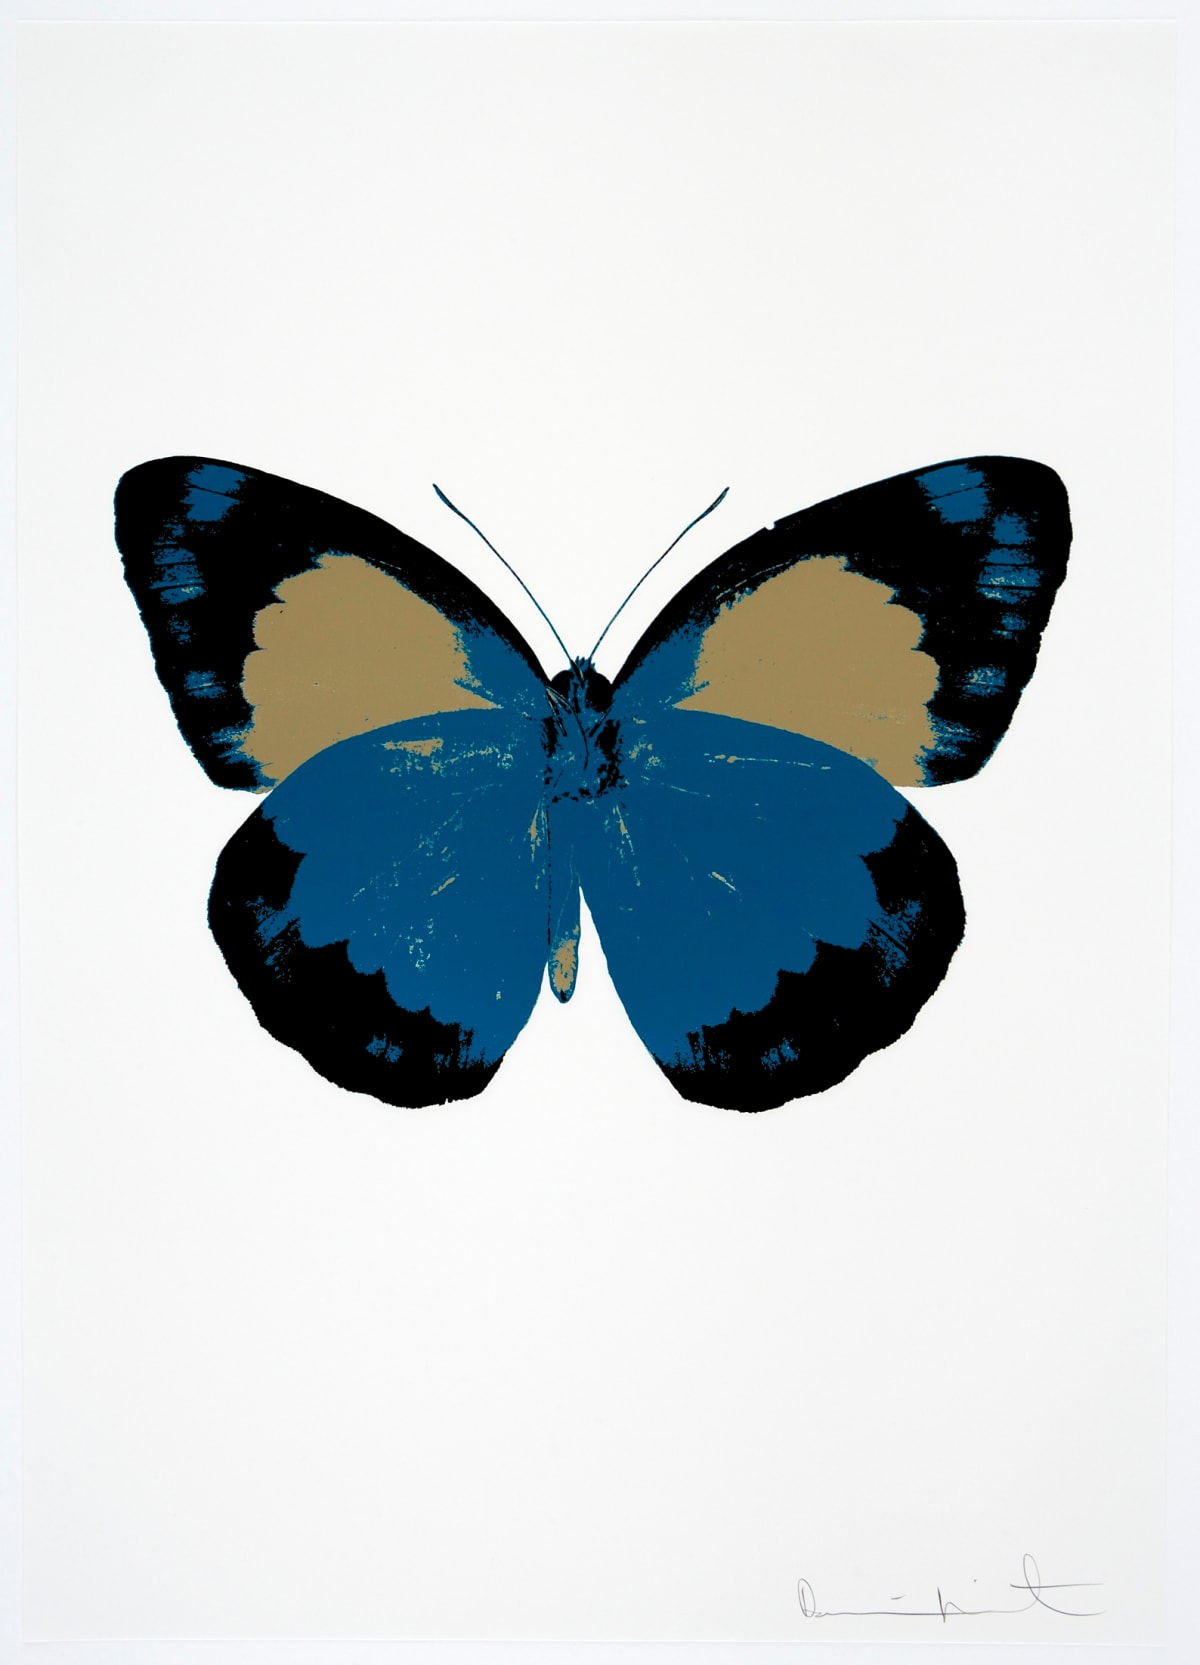 Damien Hirst The Souls II - Turquoise/Raven Black/Cool Gold, 2010 3 colour foil block on 300gsm Arches 88 archival paper. Signed and numbered. Published by Paul Stolper and Other Criteria 72 x 51cm OC7870 / 658-53 Edition of 15